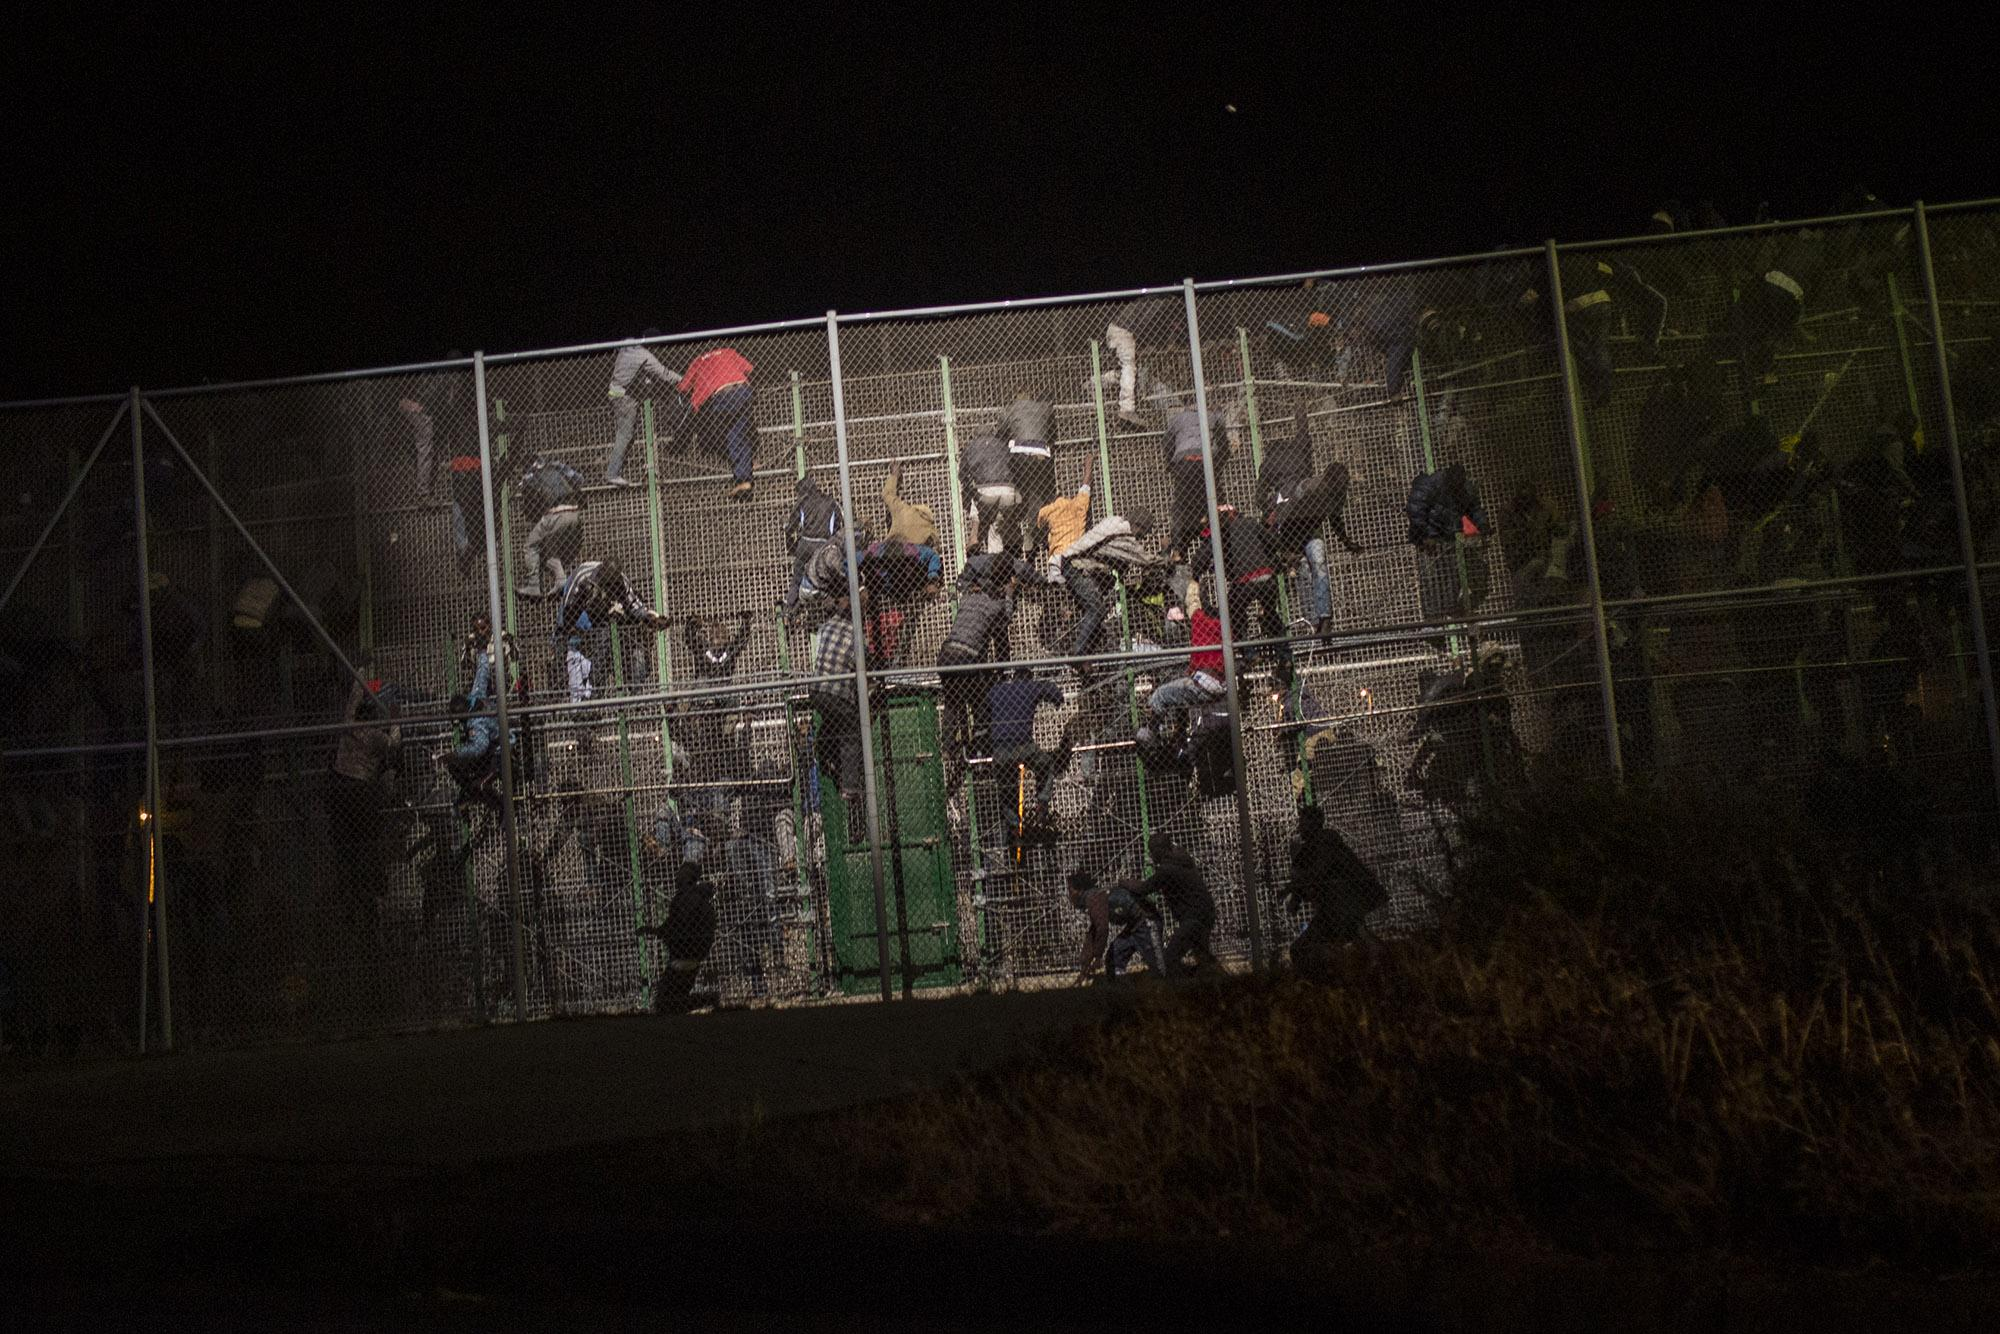 Sub-Saharan migrants scale a metallic fence that divides Morocco and the Spanish enclave of Melilla, early in the morning on Wednesday, May 28, 2014. More than 400 African migrants managed to jump the barbed-wire border fence in SpainÌs North African enclave of Melilla, hundreds of others were blocked and beaten back by Moroccan police while the rest were pushedback by the Spanish Guardia Civil. During the pre-dawn border storming, cries of pain and noises of people being hit could be heard as police from both sides tried to prevent dozens of the sub-Saharan migrants from entering the city from Morocco. (© Santi Palacios)